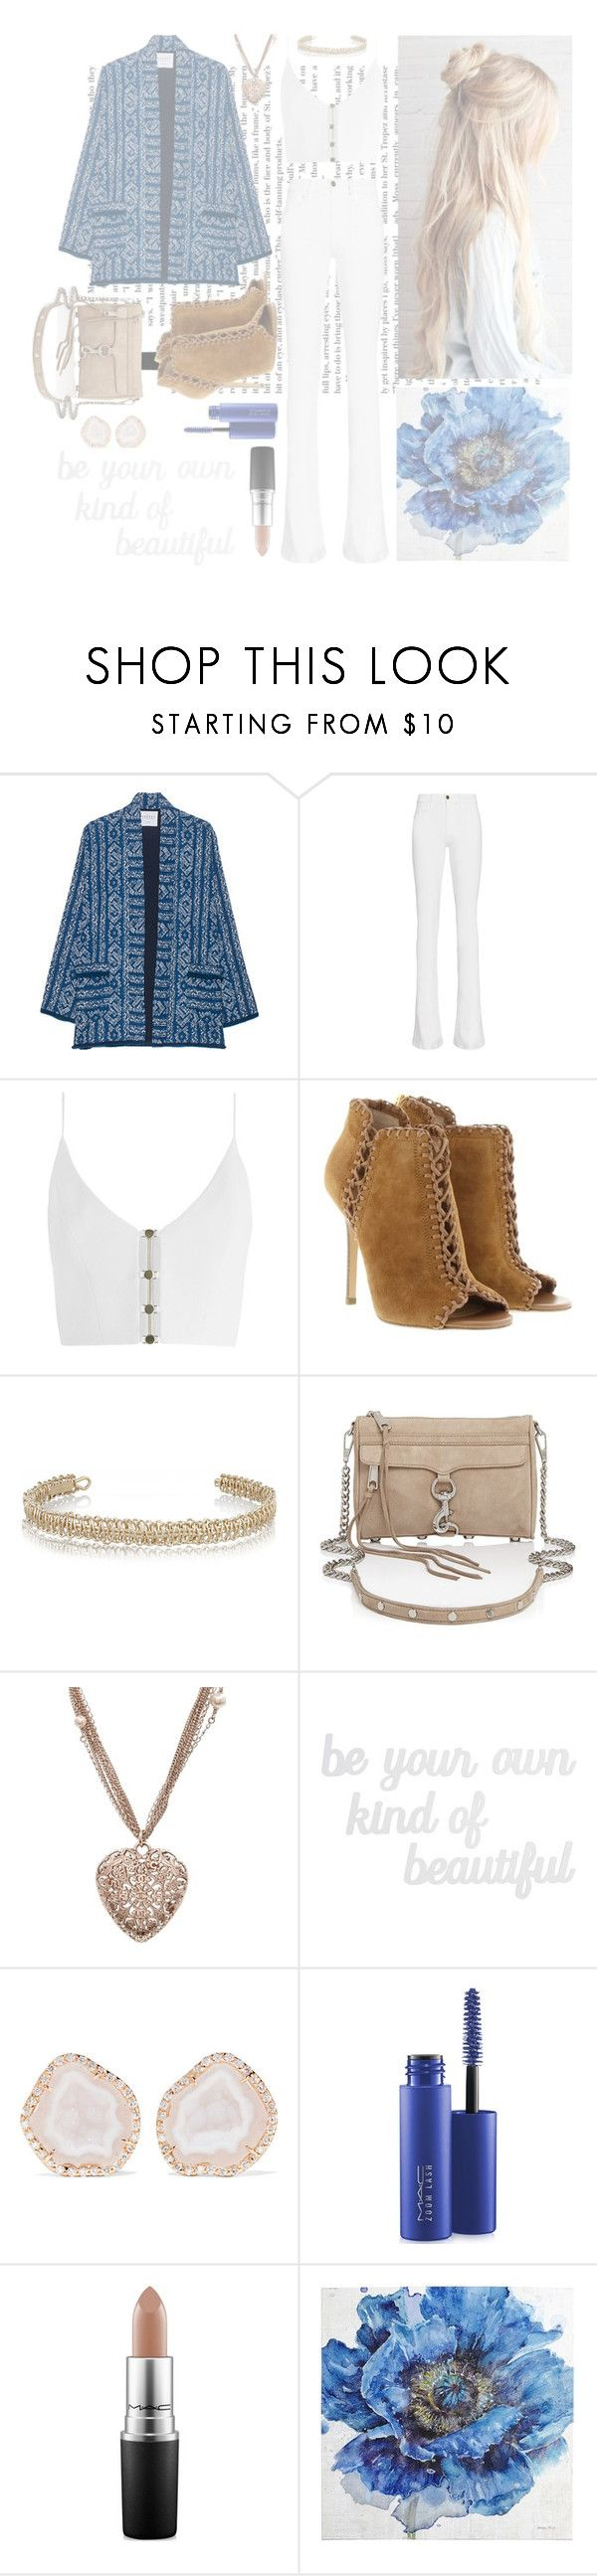 """""""✨"""" by zooboolakiss ❤ liked on Polyvore featuring Velvet by Graham & Spencer, Frame, Zimmermann, Michael Kors, Maison Margiela, Rebecca Minkoff, Chanel, PBteen, Kimberly McDonald and MAC Cosmetics"""